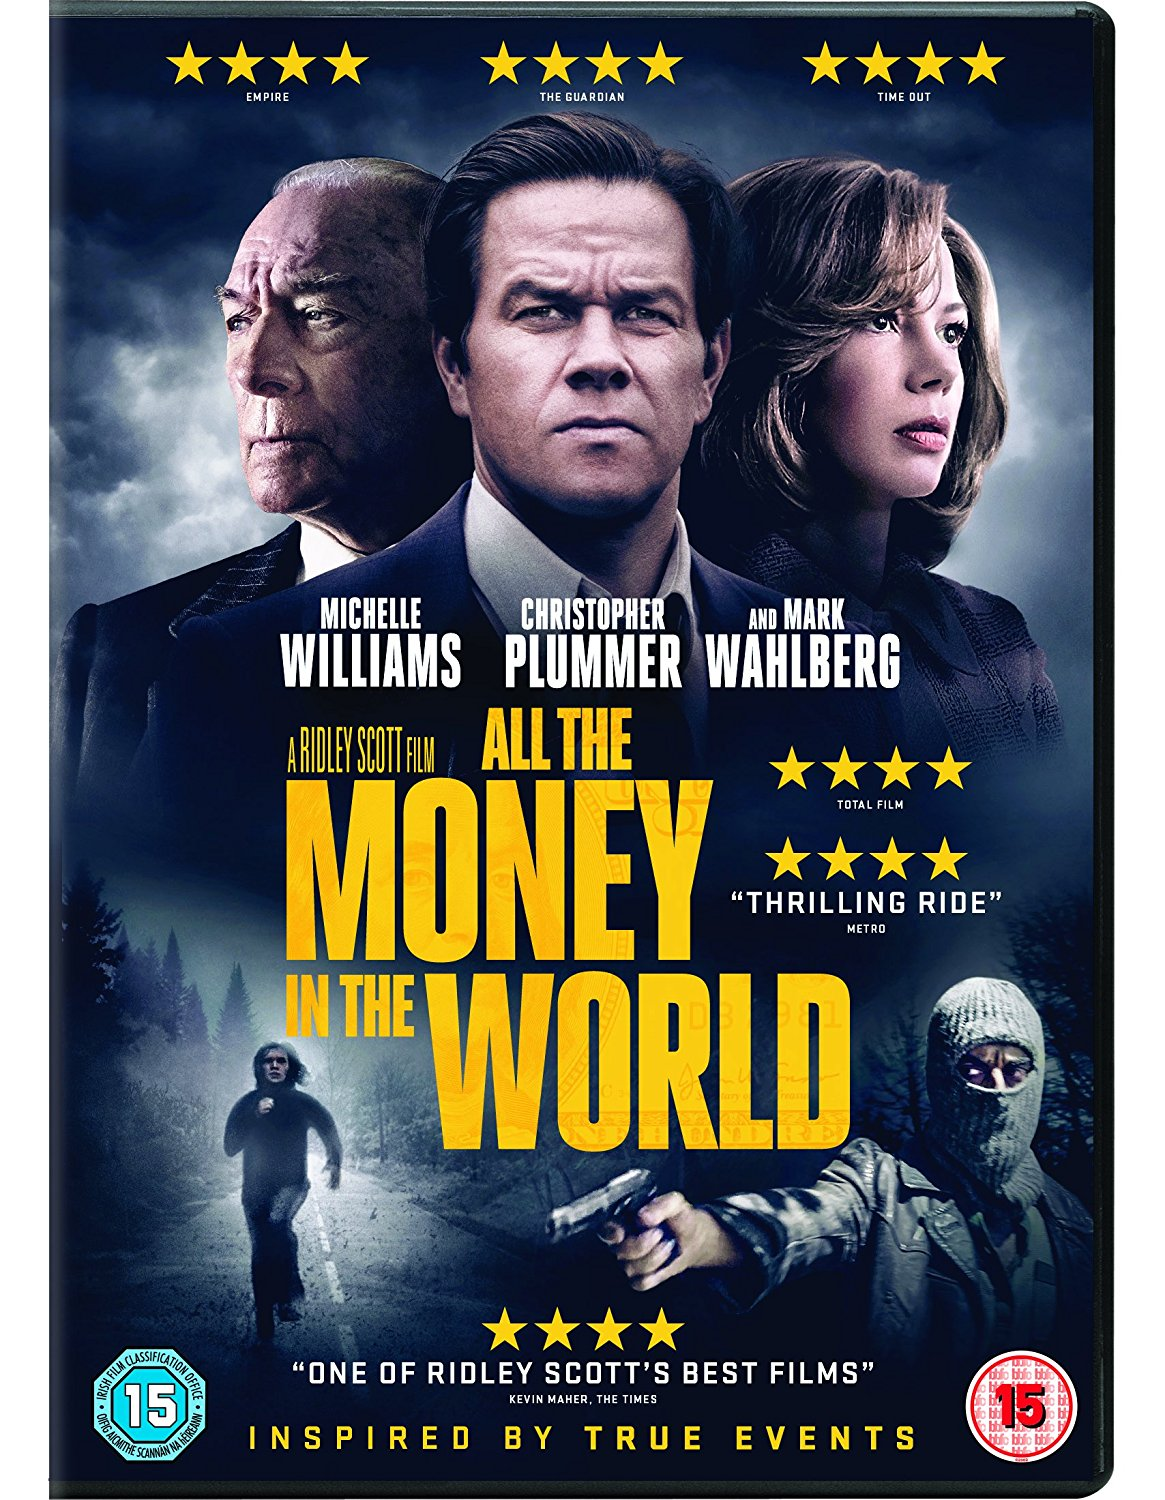 All the Money in the World - Ridley Scott [DVD]